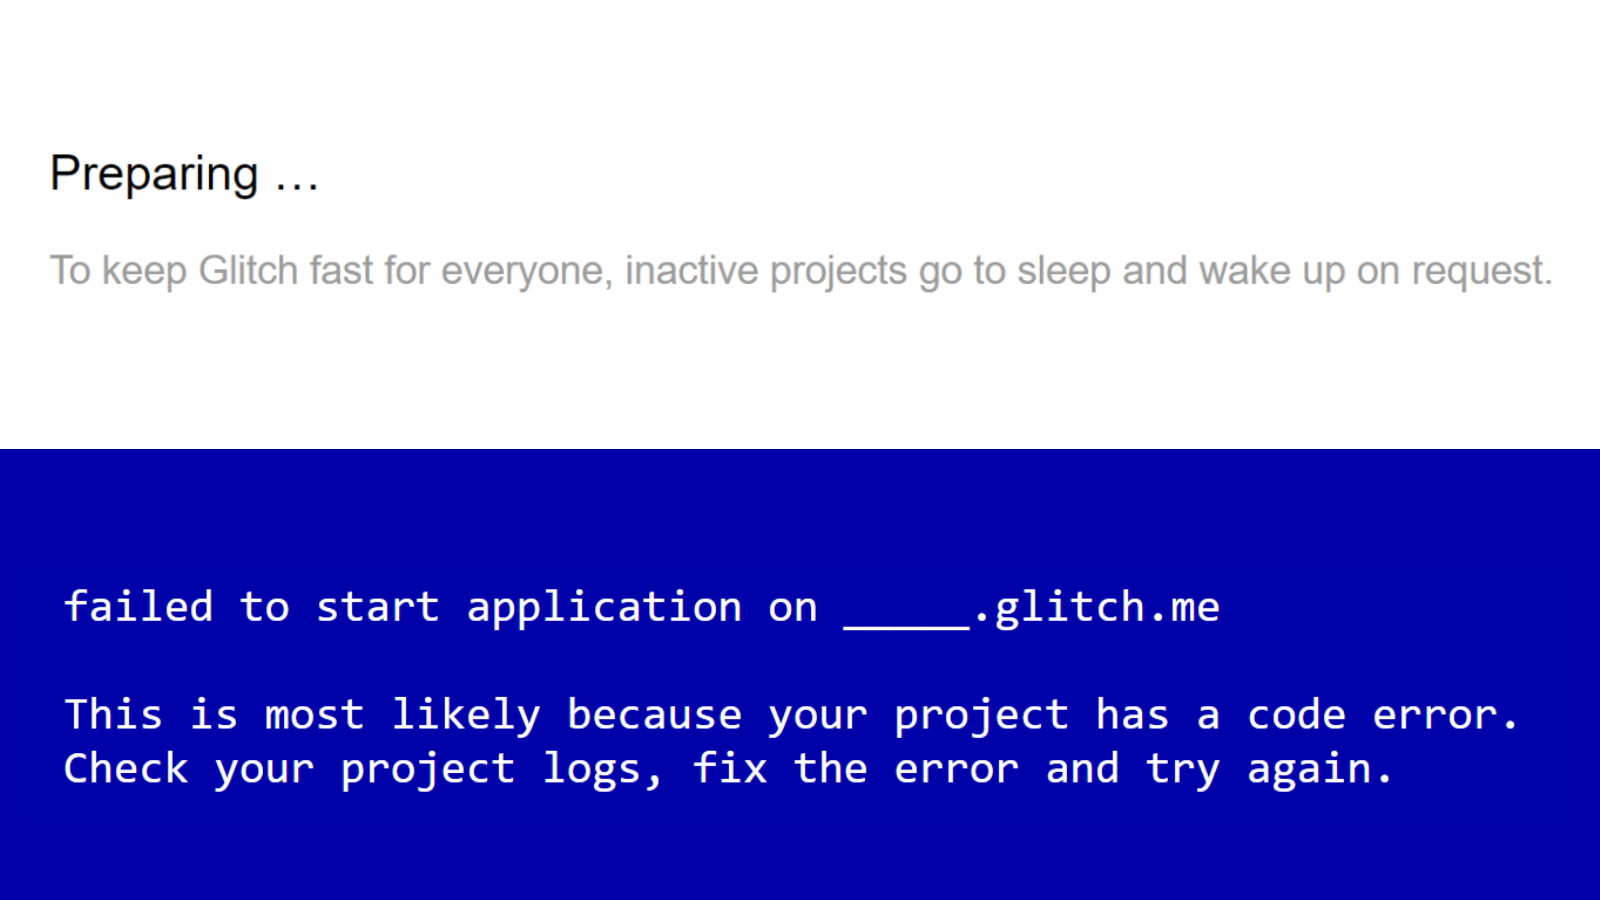 Glitch - Project failing to start after preparing from inactive state